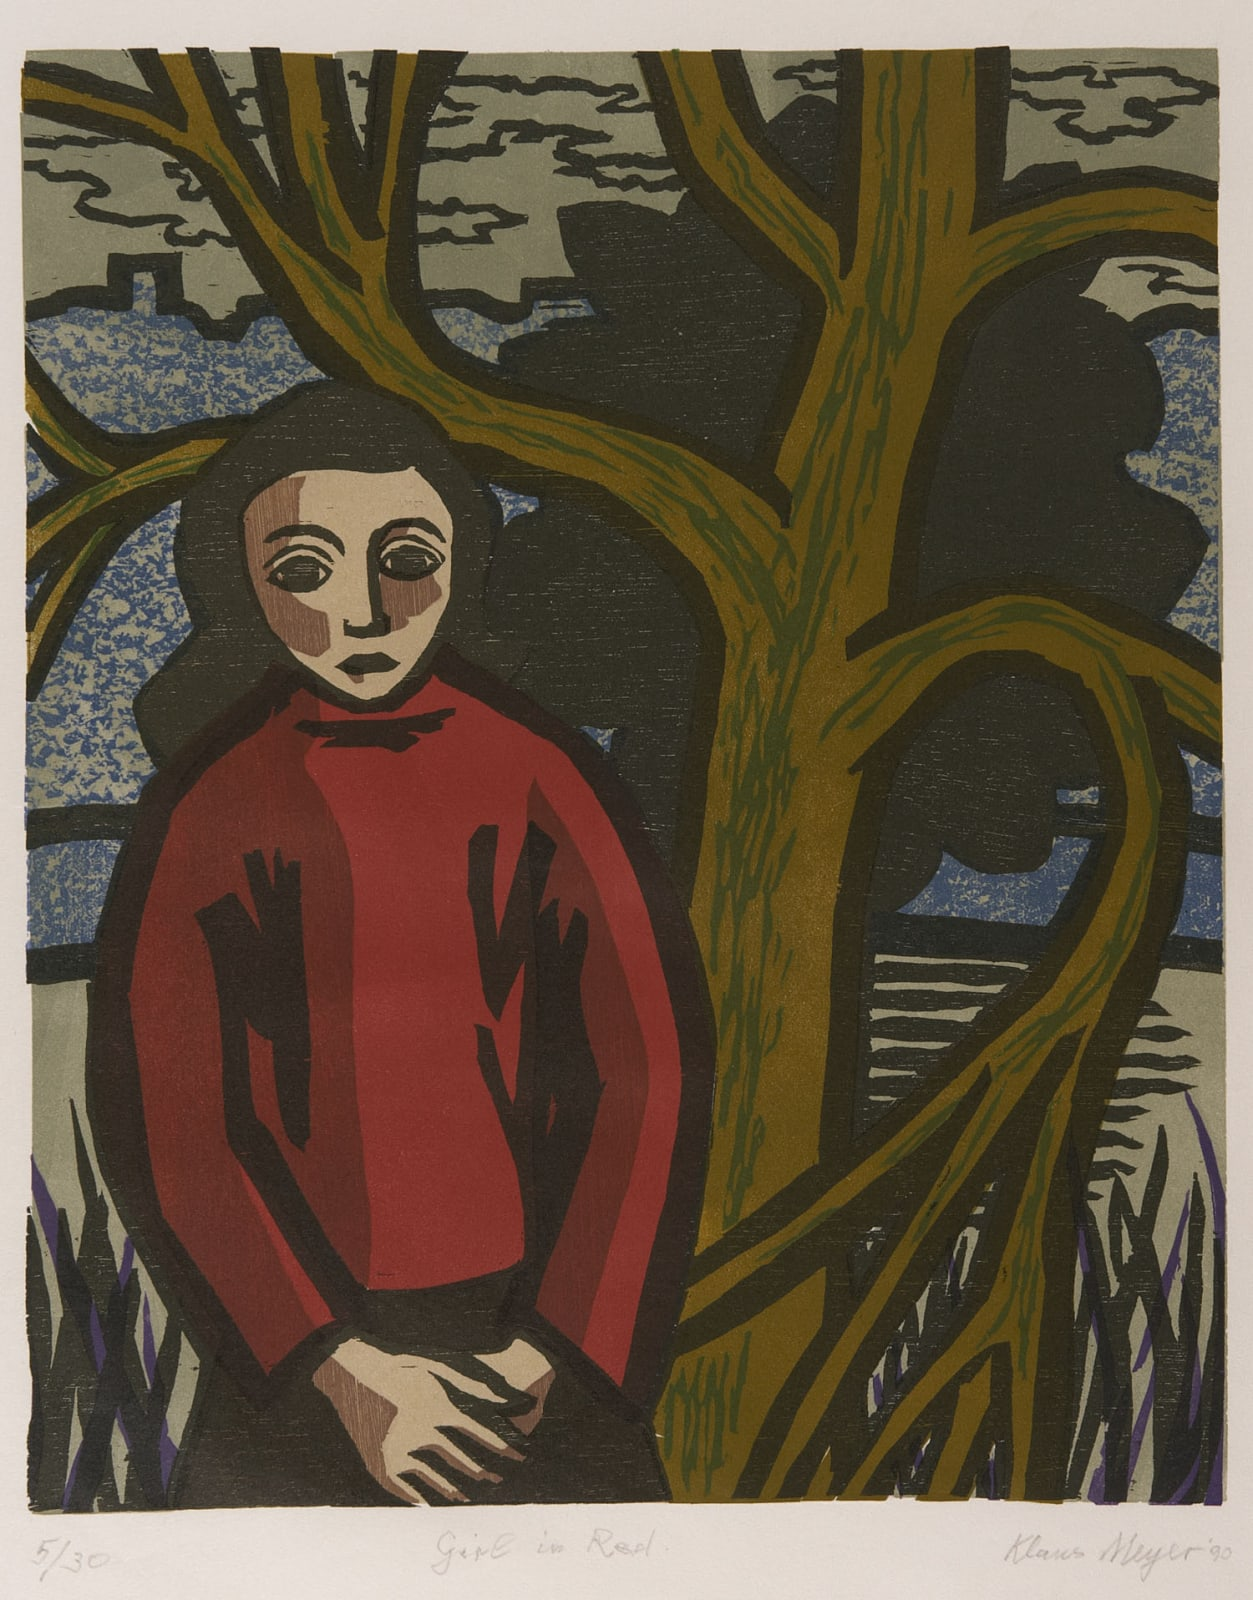 Klaus Meyer (1918-2002) Girl in Red 1990 Woodcut on paper 45 x 36.5 cm Ben Uri Collection © Klaus Meyer estate